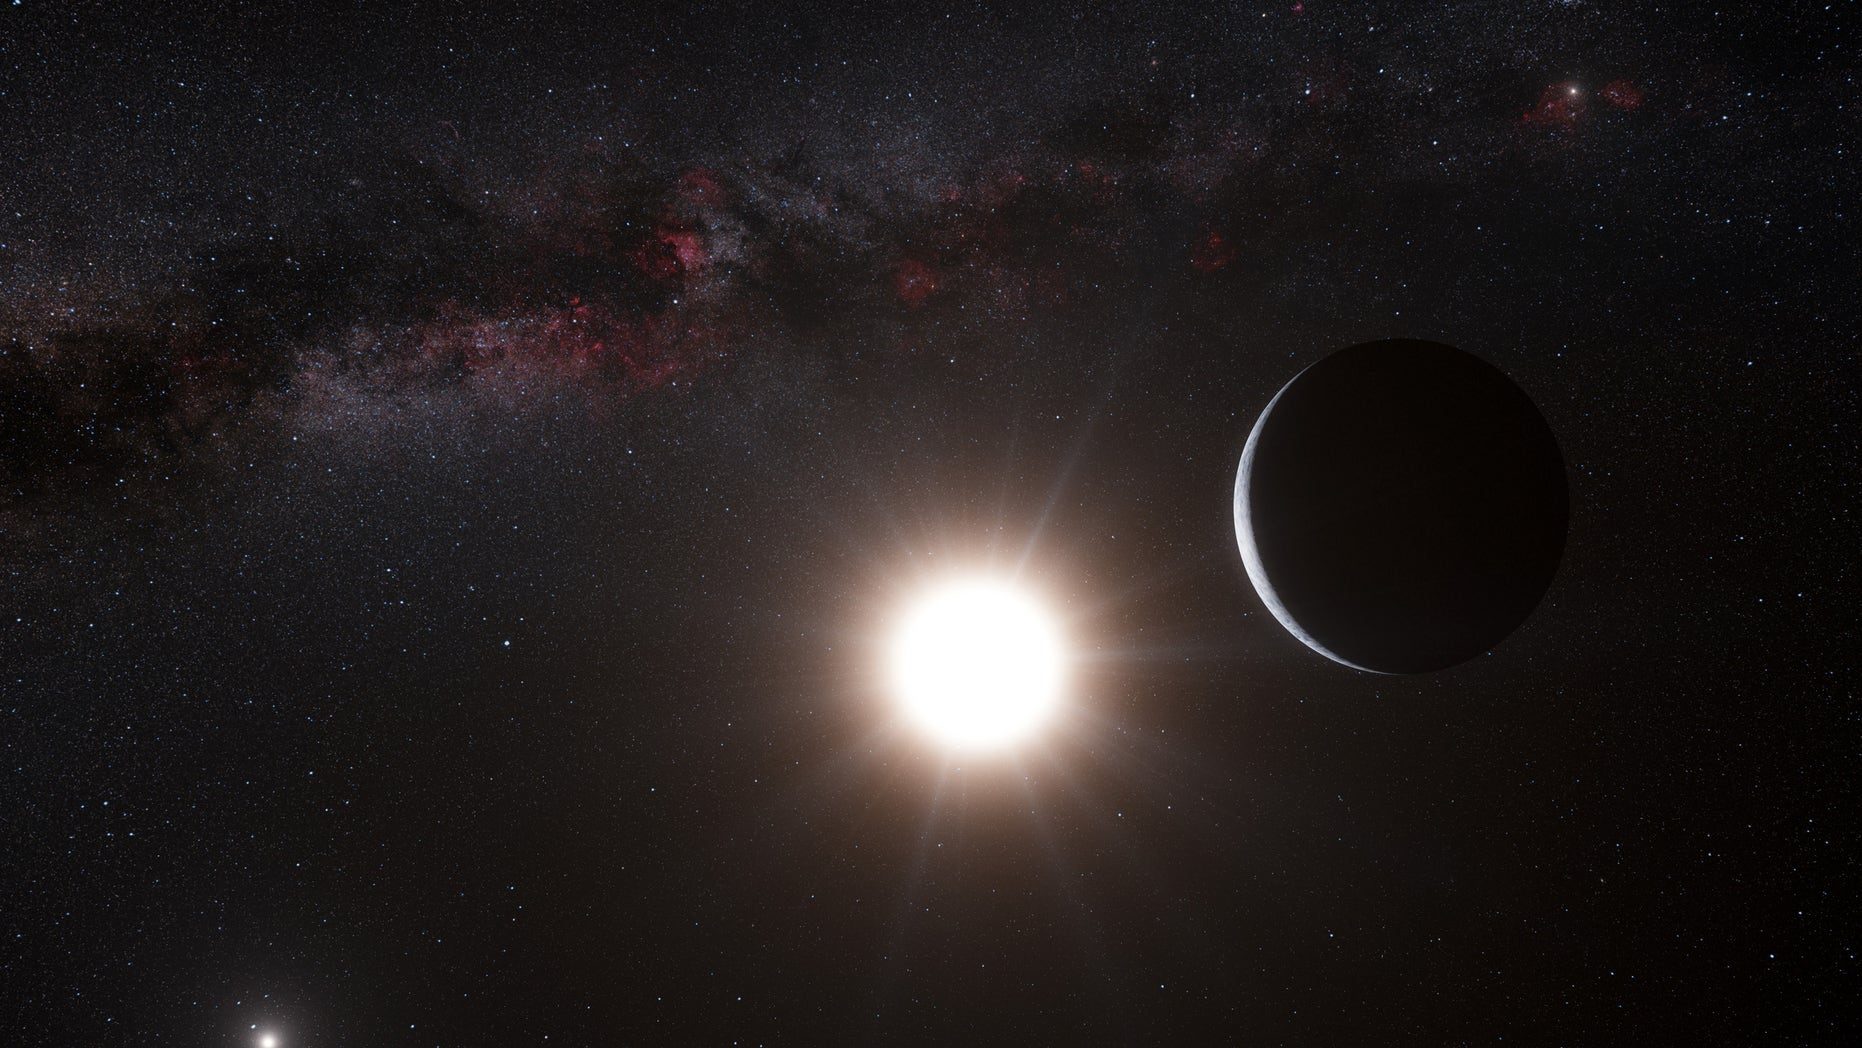 Oct. 16, 2012: This artists impression made available by the European Southern Observatory shows a planet, right, orbiting the star Alpha Centauri B, center, a member of the triple star system that is the closest to Earth. Alpha Centauri A is at left. The Earth's Sun is visible at upper right.